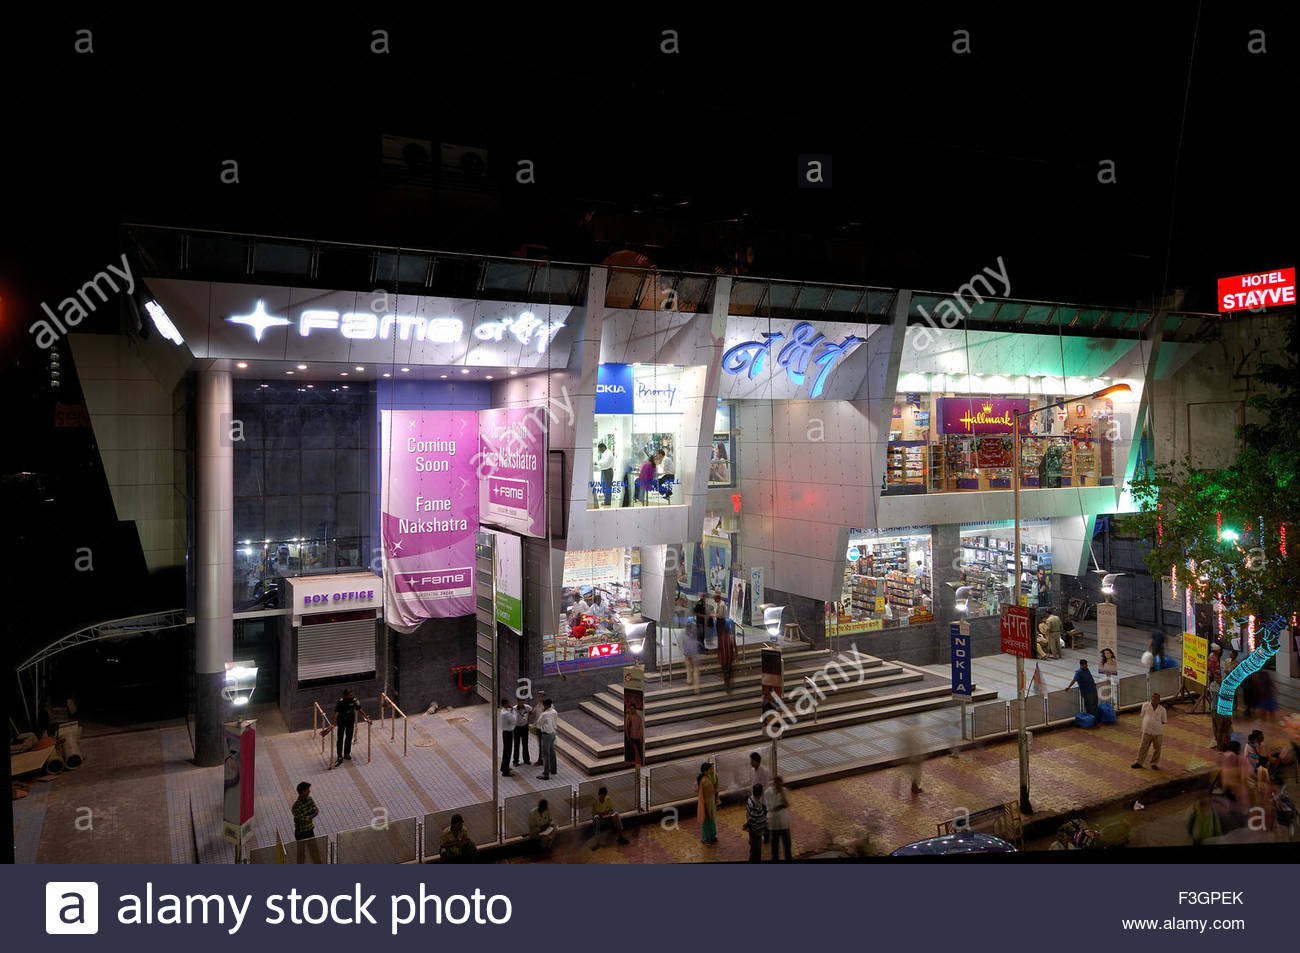 Nakshatra shopping mall and fame theatre in place of kohinoor theatre at Dadar; Mumbai Bombay ; Maharashtra ; India - Stock Image